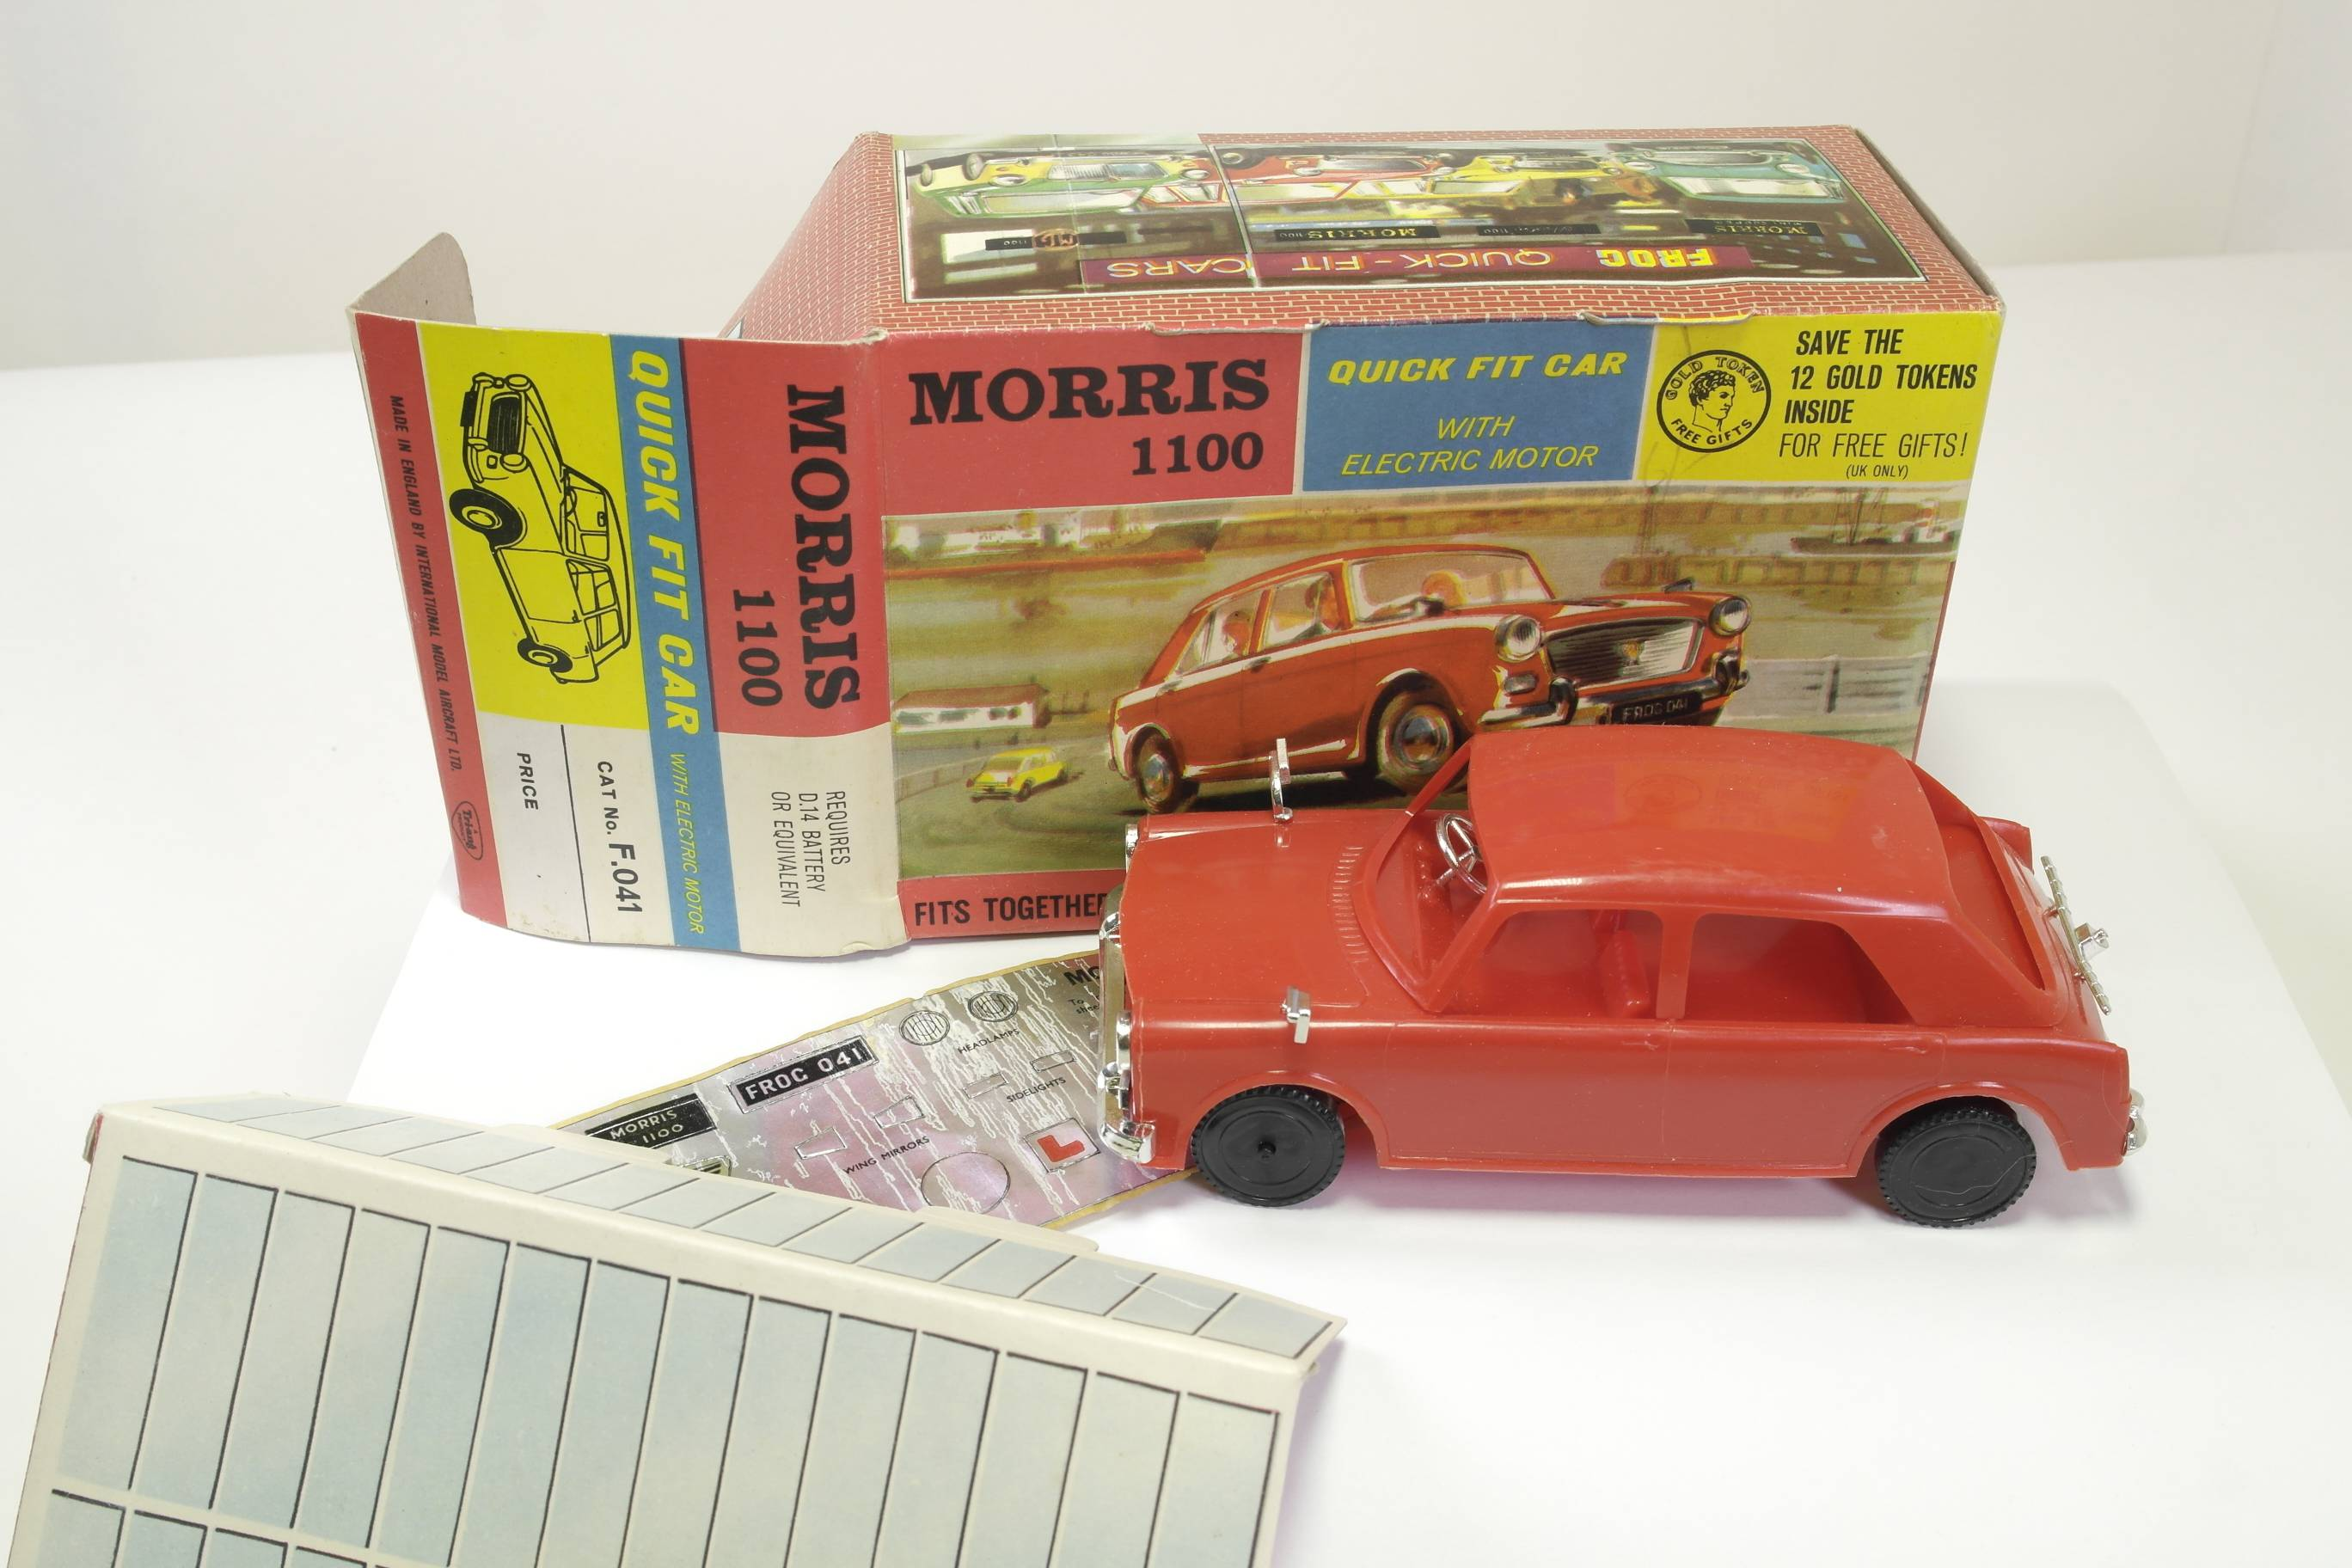 Picture Gallery for FROG F041 Morris 1100 Kit